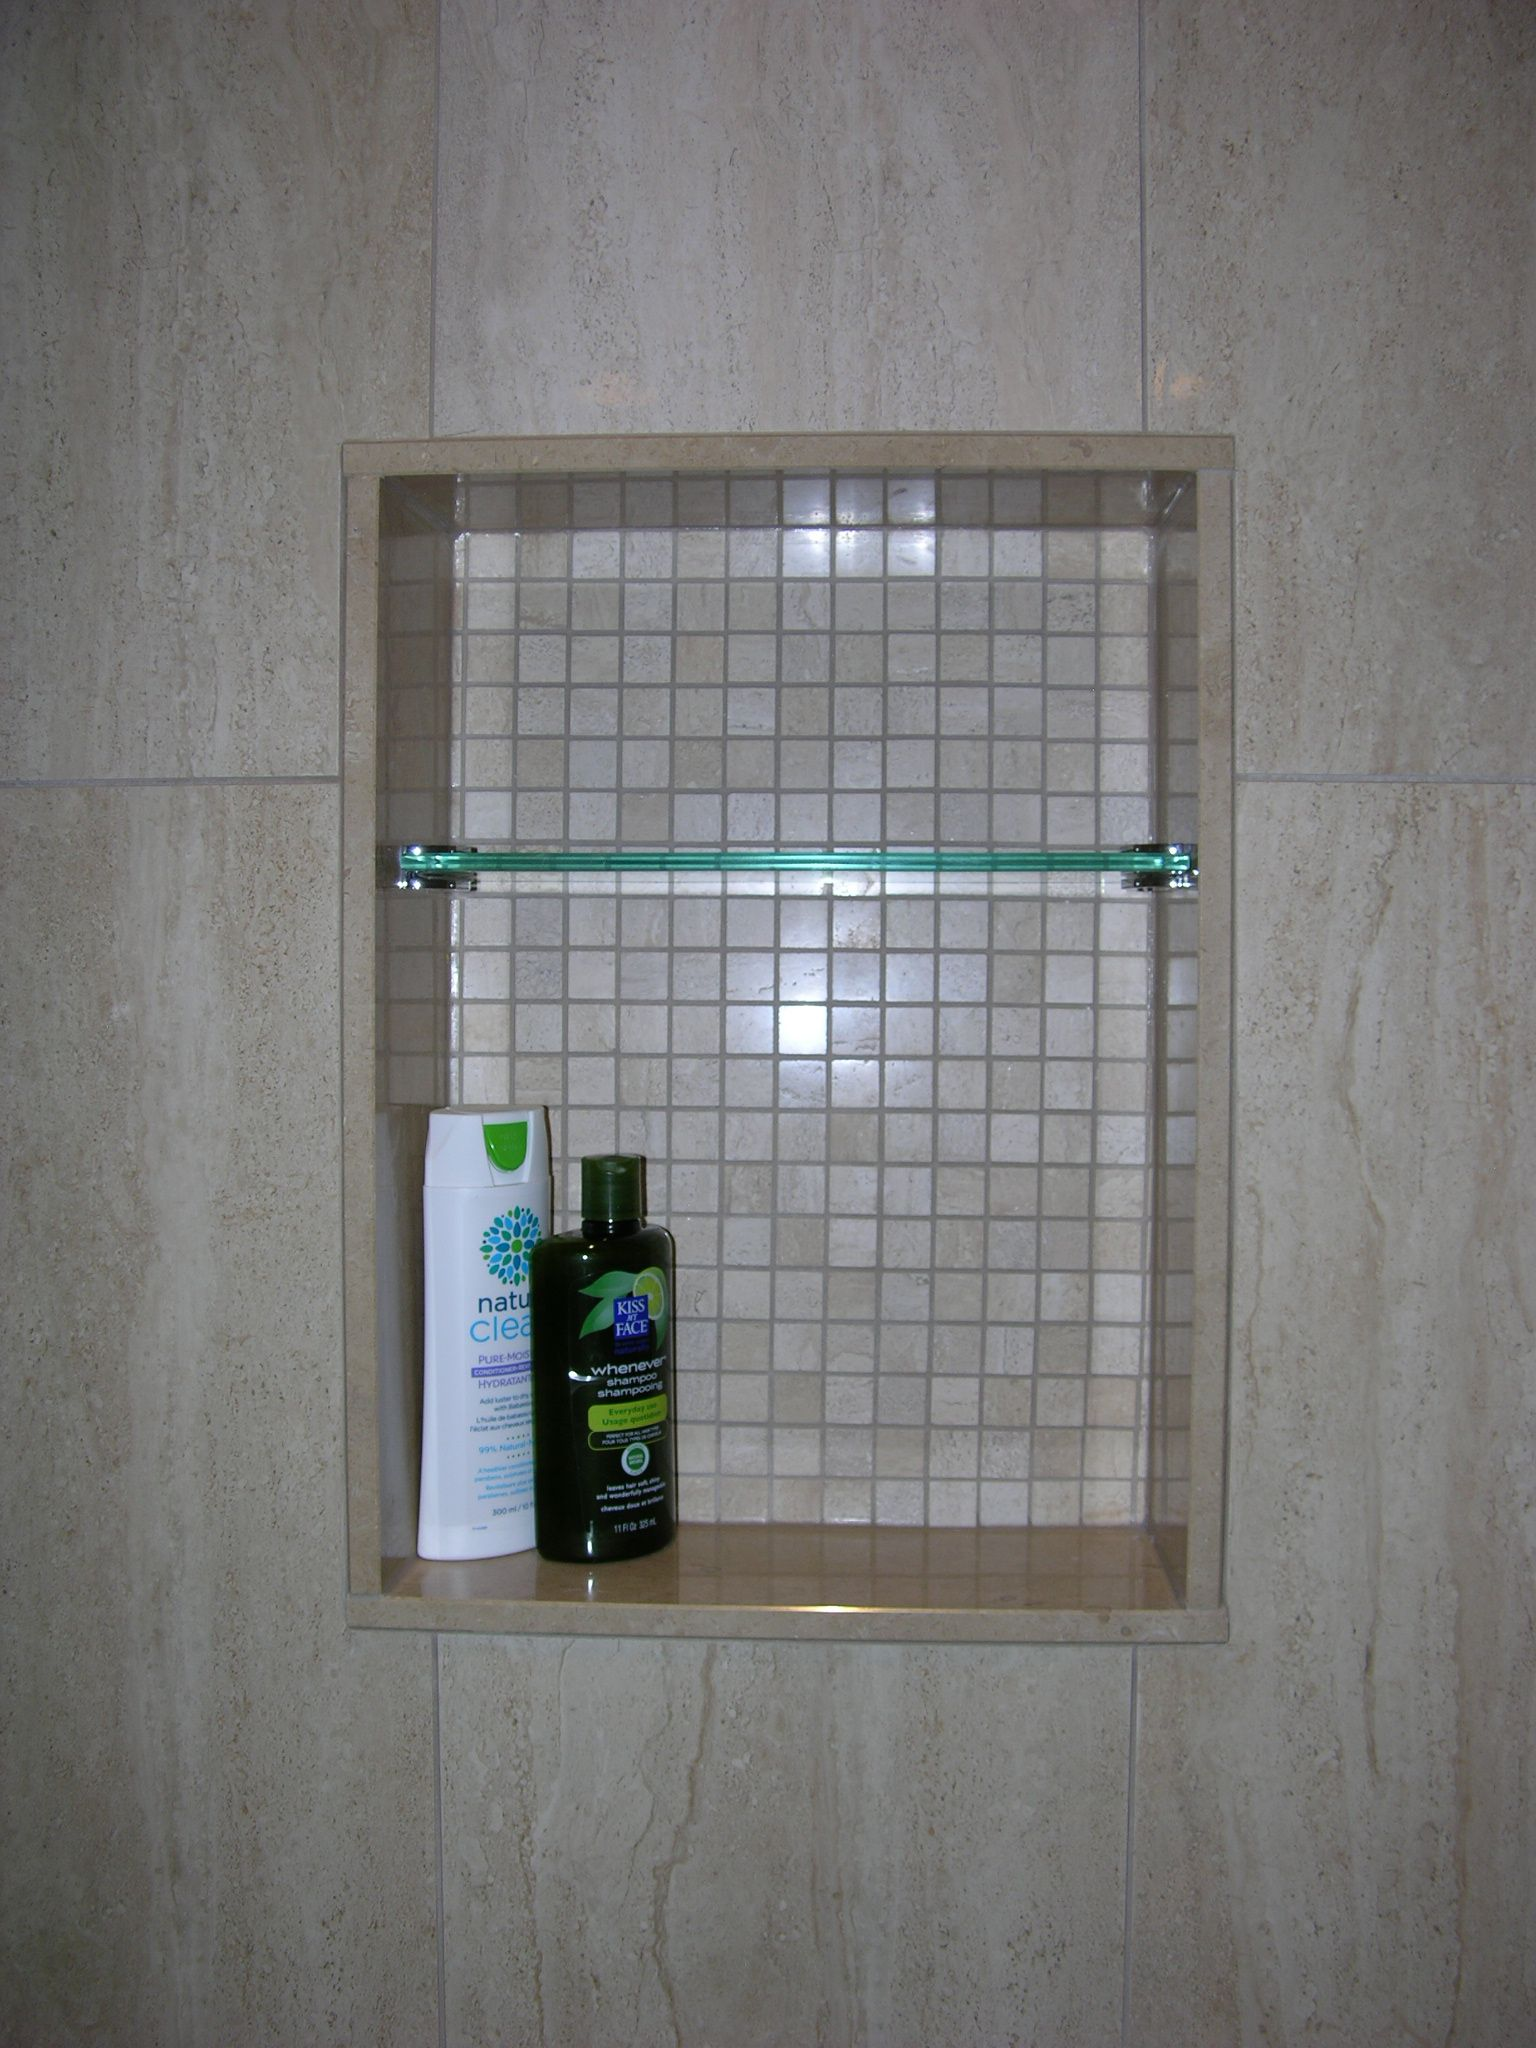 glass shelves for bathroom niche creative moen handle tub floating corner shower shelf bookshelves perth wall with coat hooks entryway large brackets kitchen cabinet storage inch